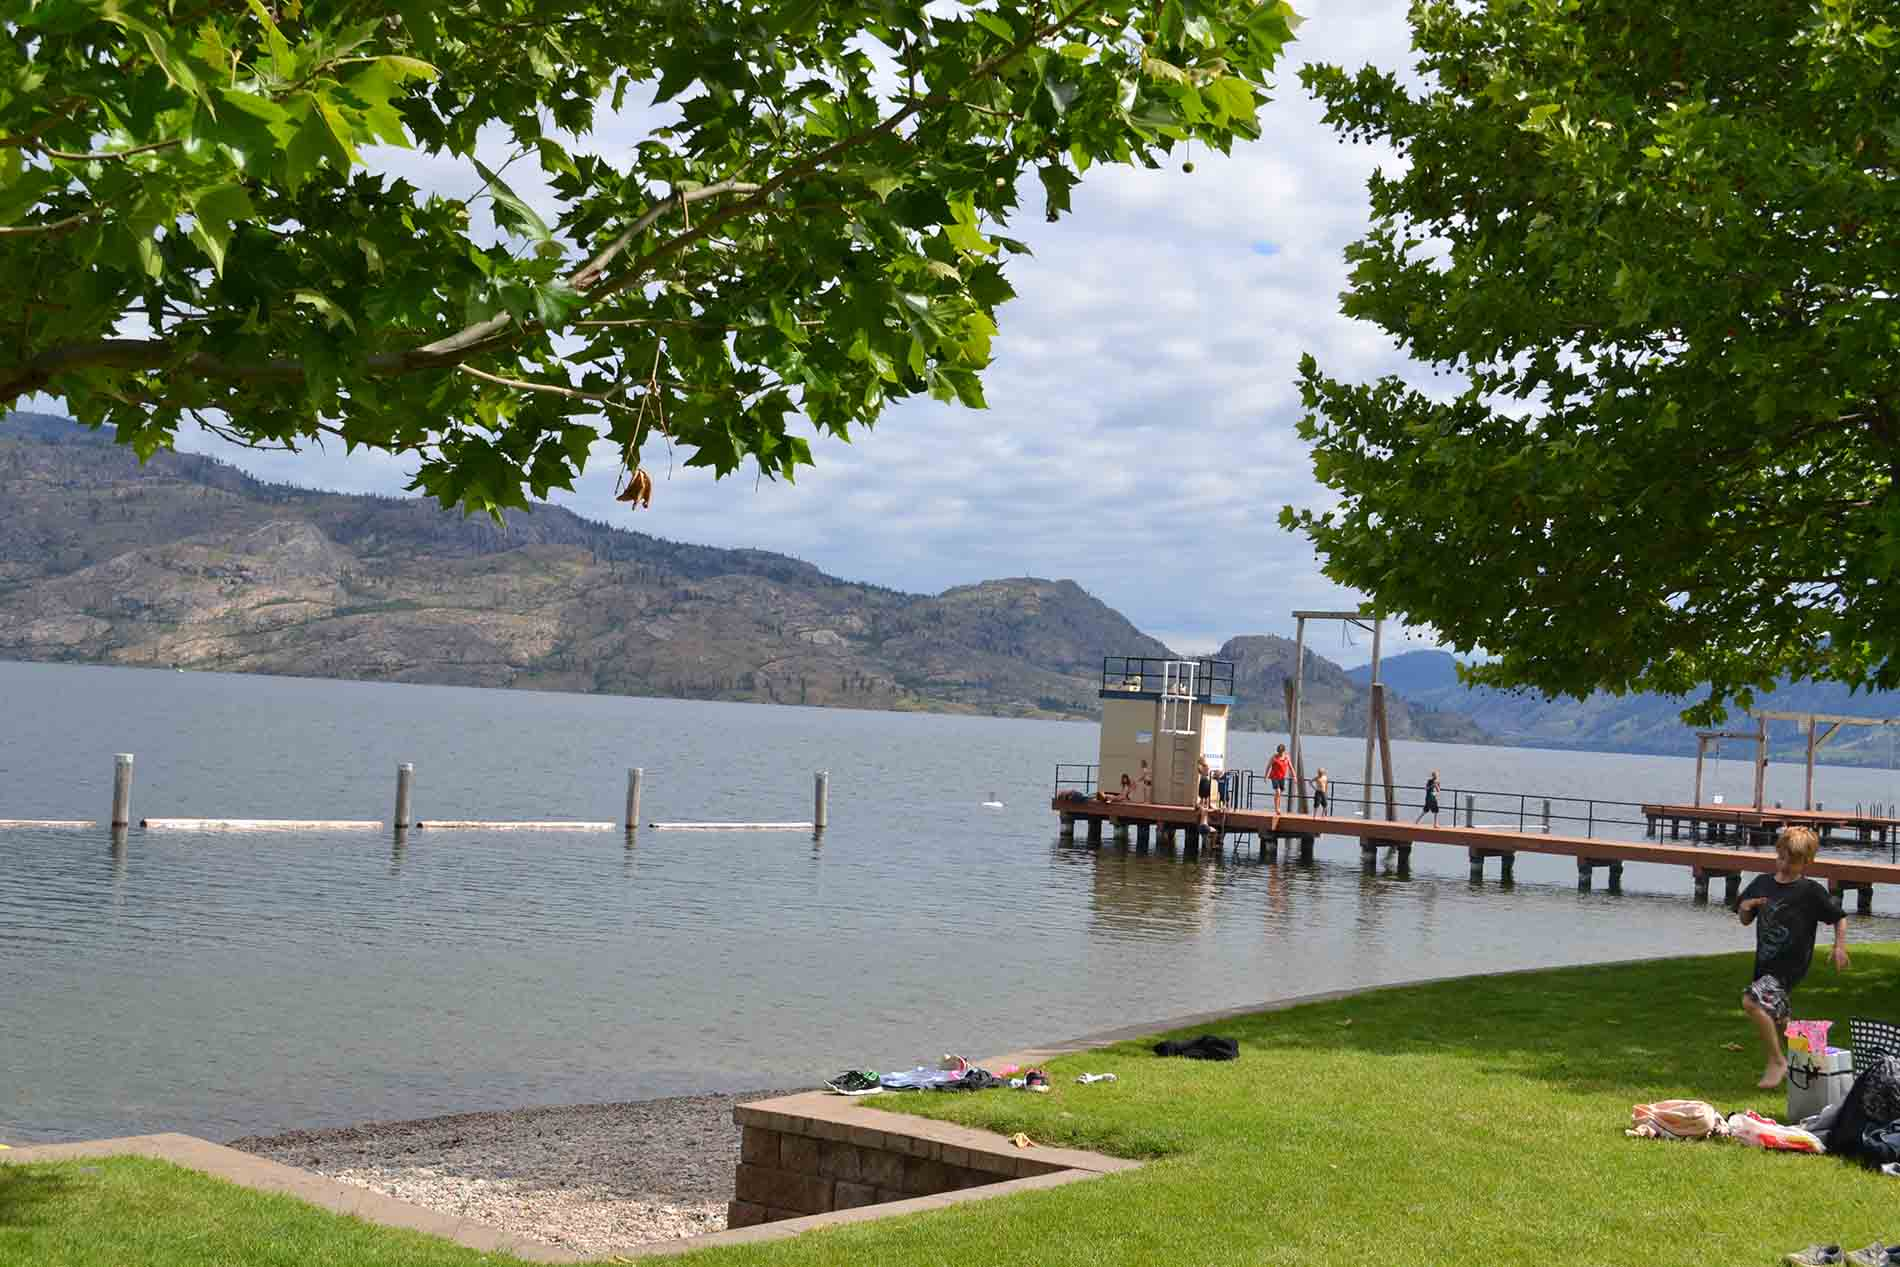 Swim Bay on Okanagan Lake in Peachland